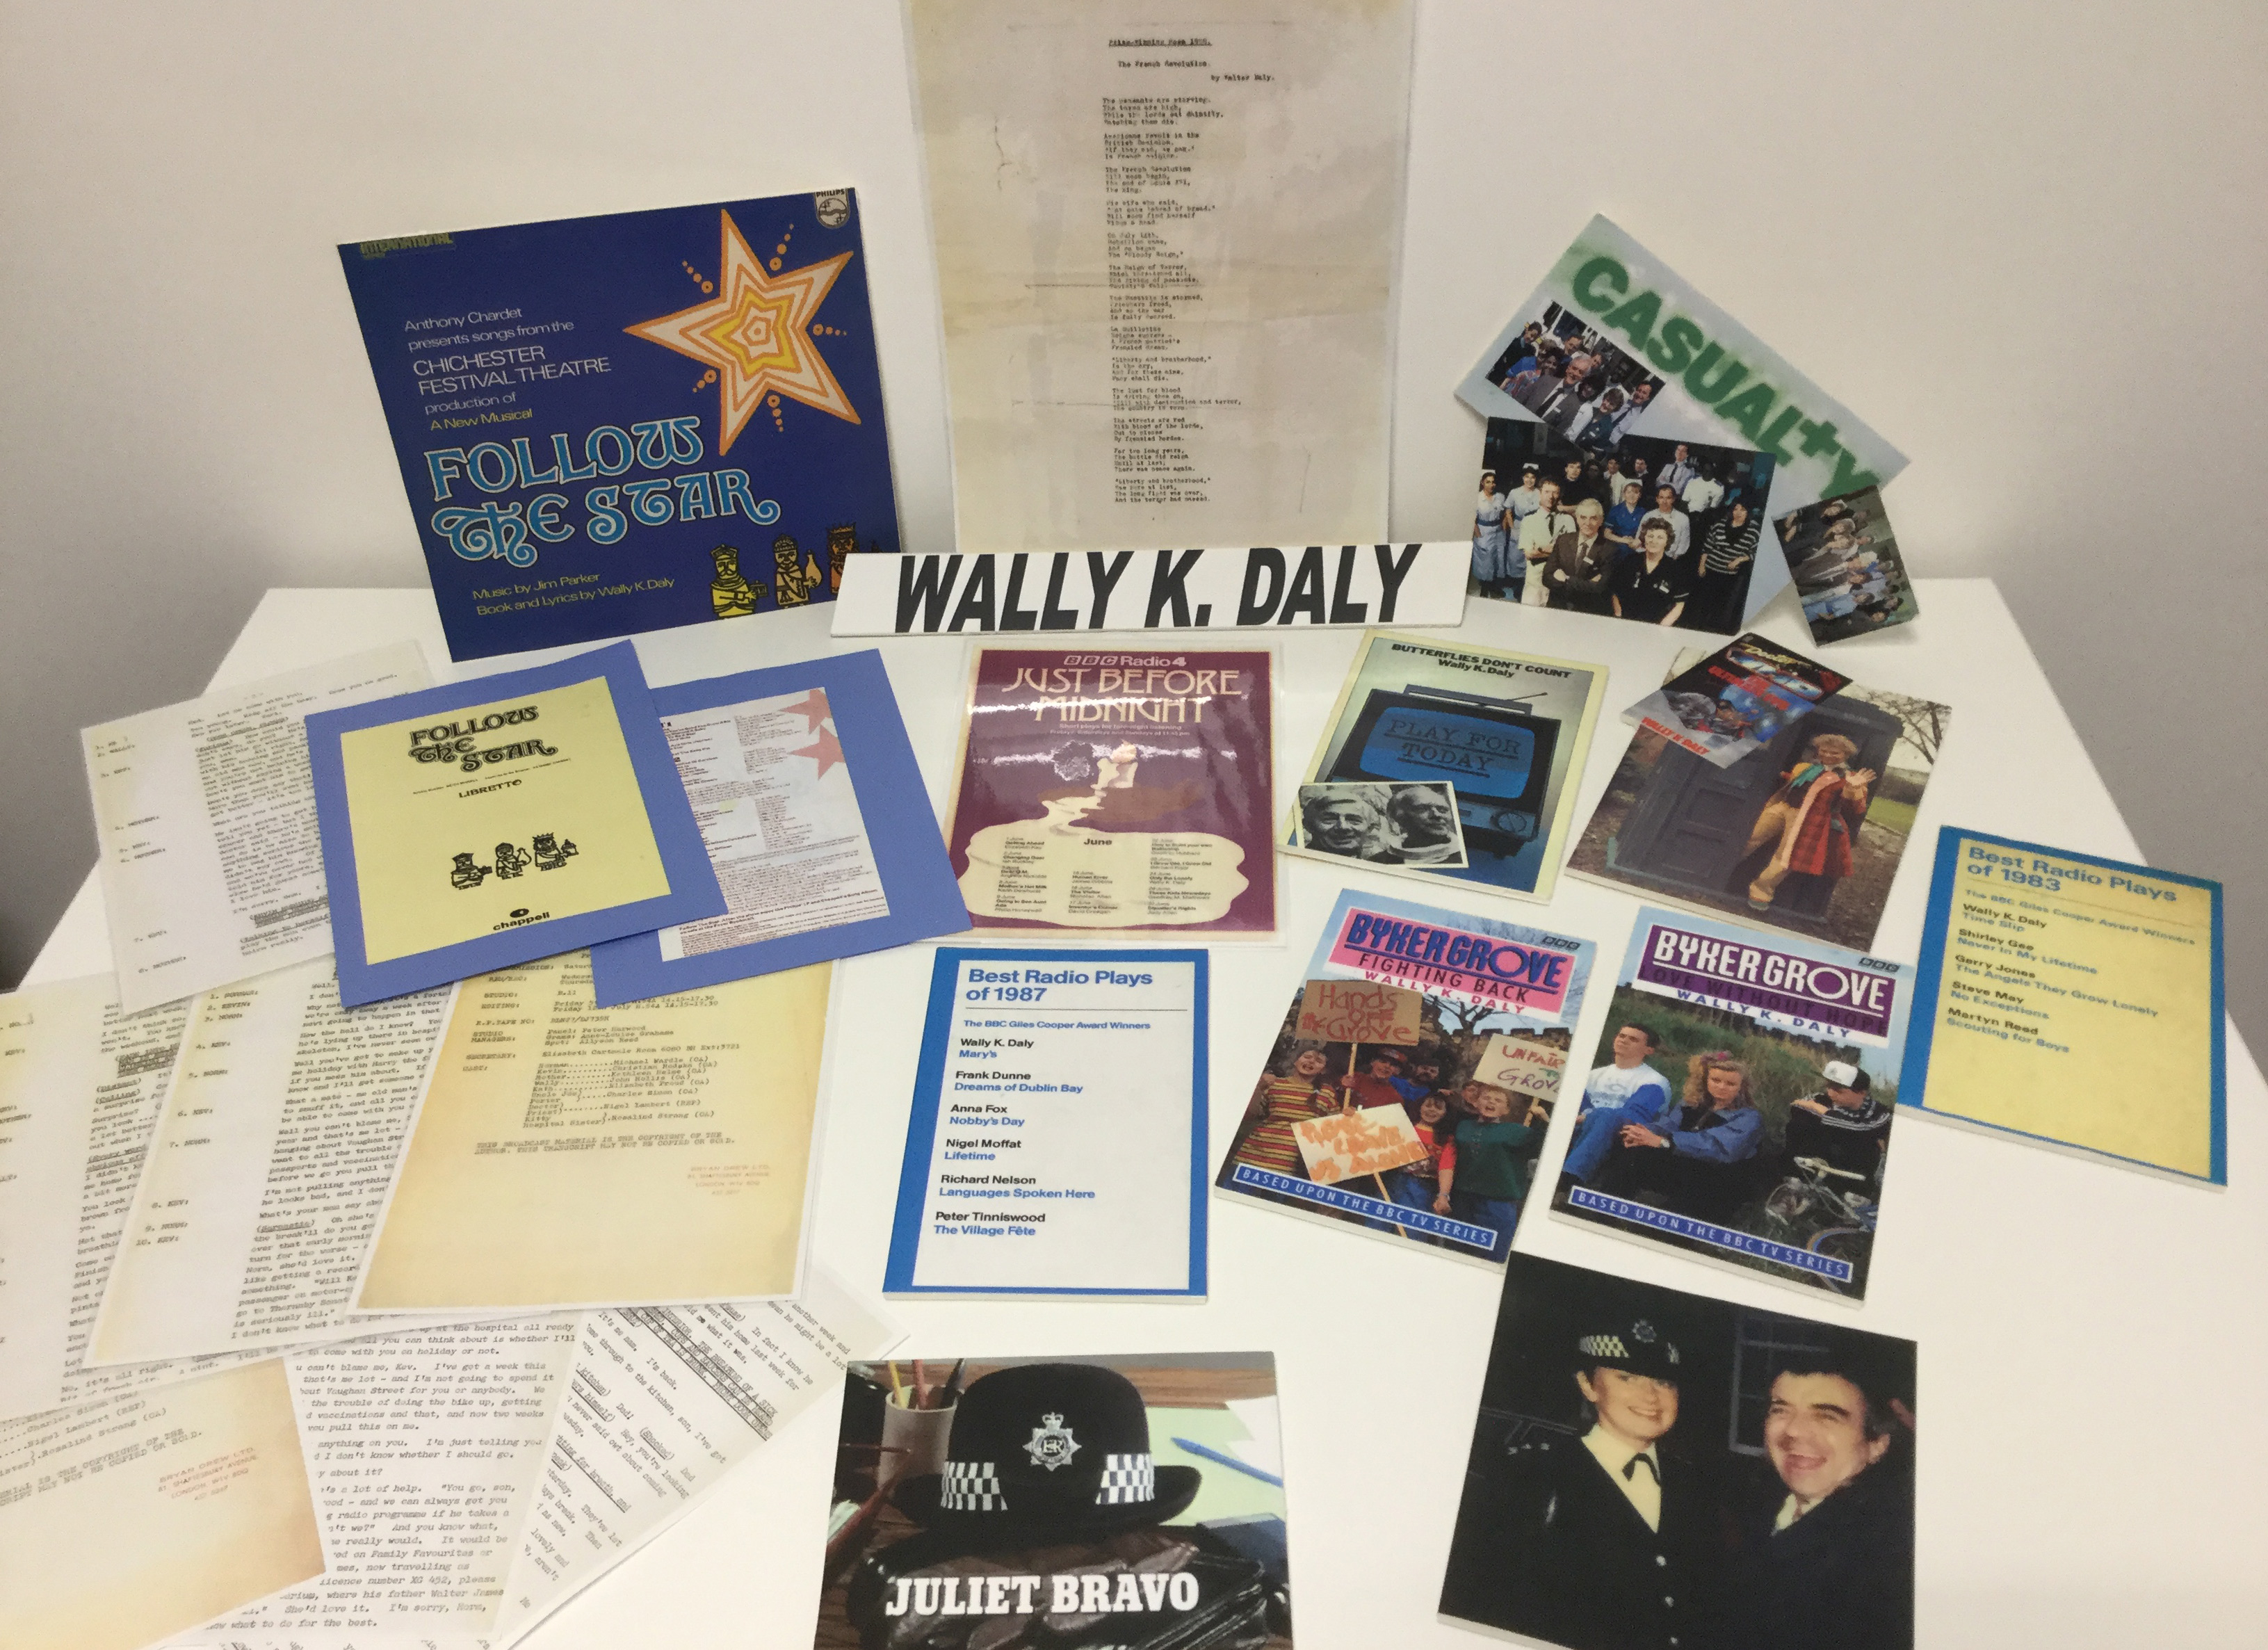 Wally K Daly Archive material